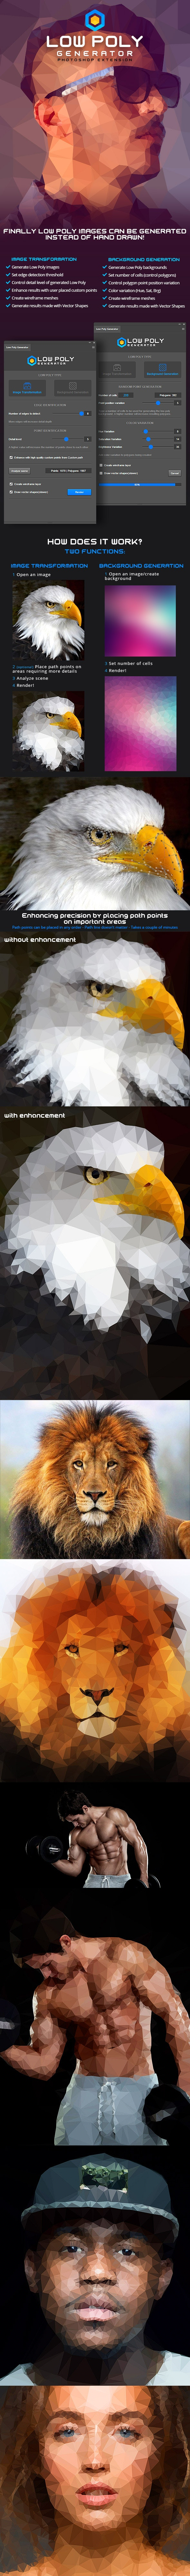 Low Poly Generator - Photoshop Extension - Photo Effects Actions